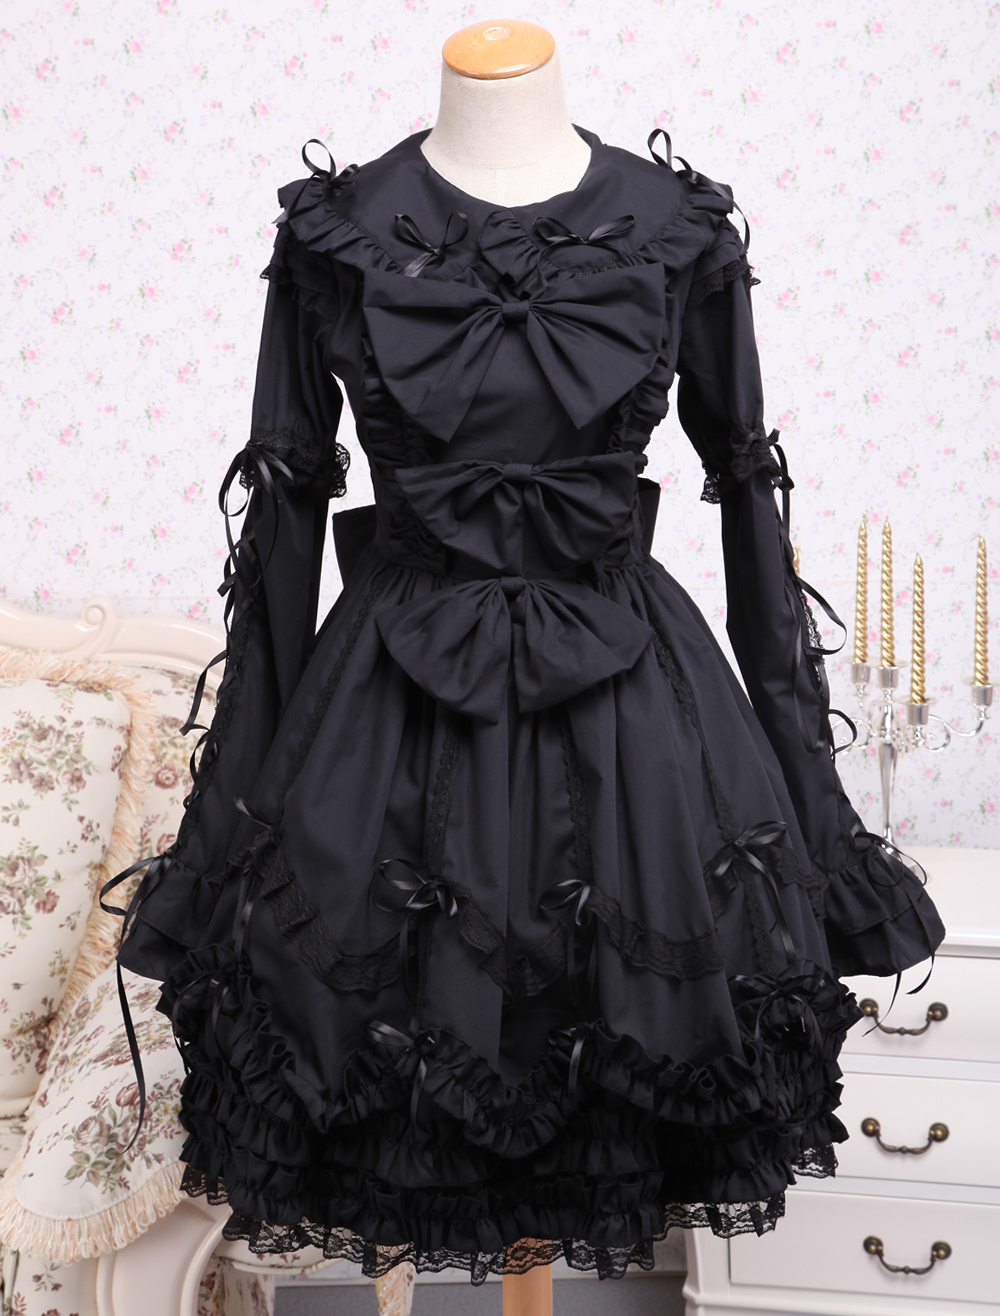 Buy Elegant Gothic Black Cotton Lolita OP Dress Long Sleeves Lace Trim Bows Ruffles for $81.89 in Milanoo store